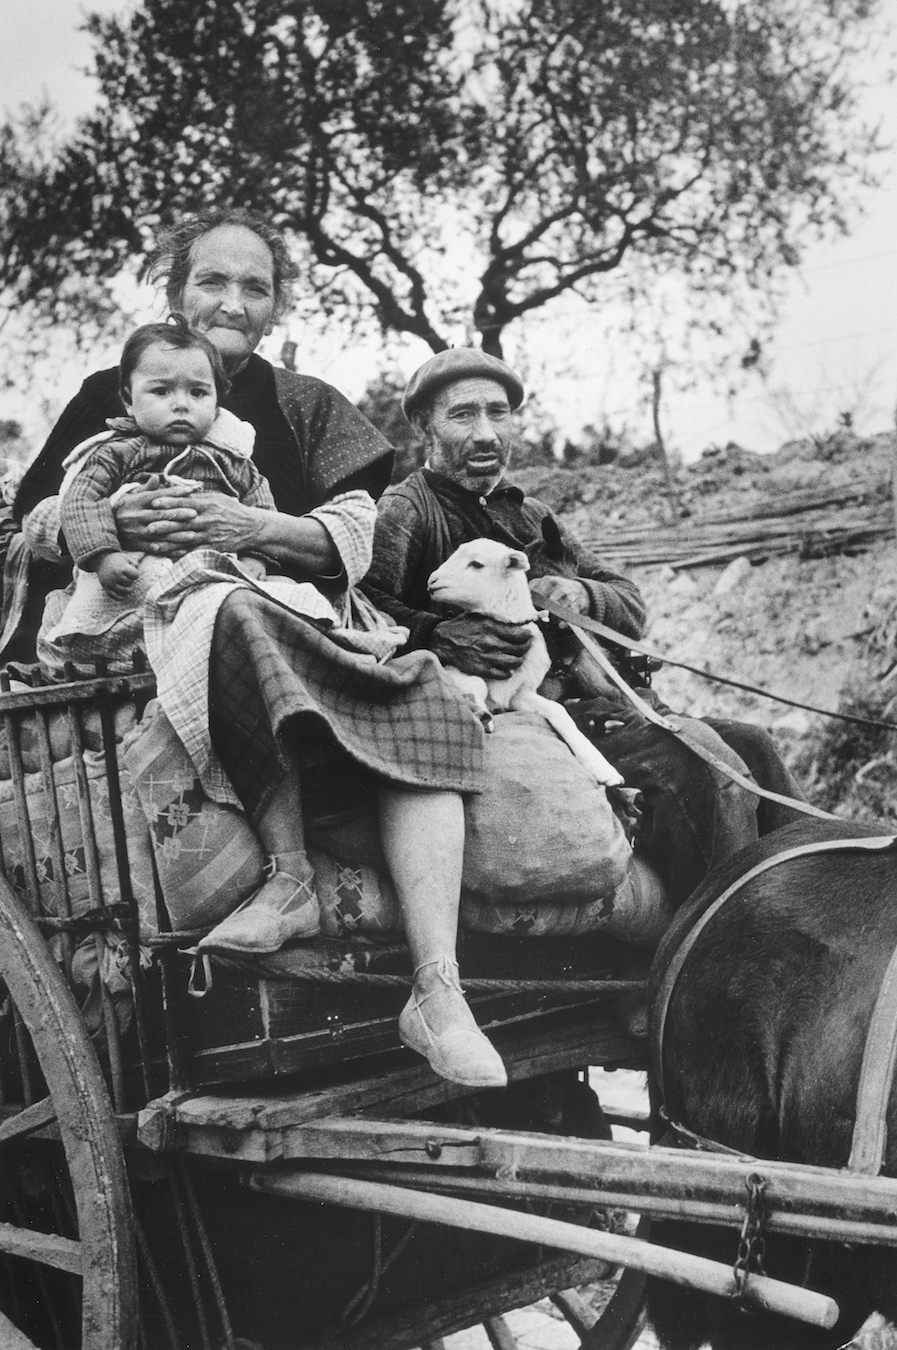 Robert Capa [Refugee family on a cart on the road from Tarragona to Barcelona], January 15, 1939] © International Center of Photography/Magnum Photos